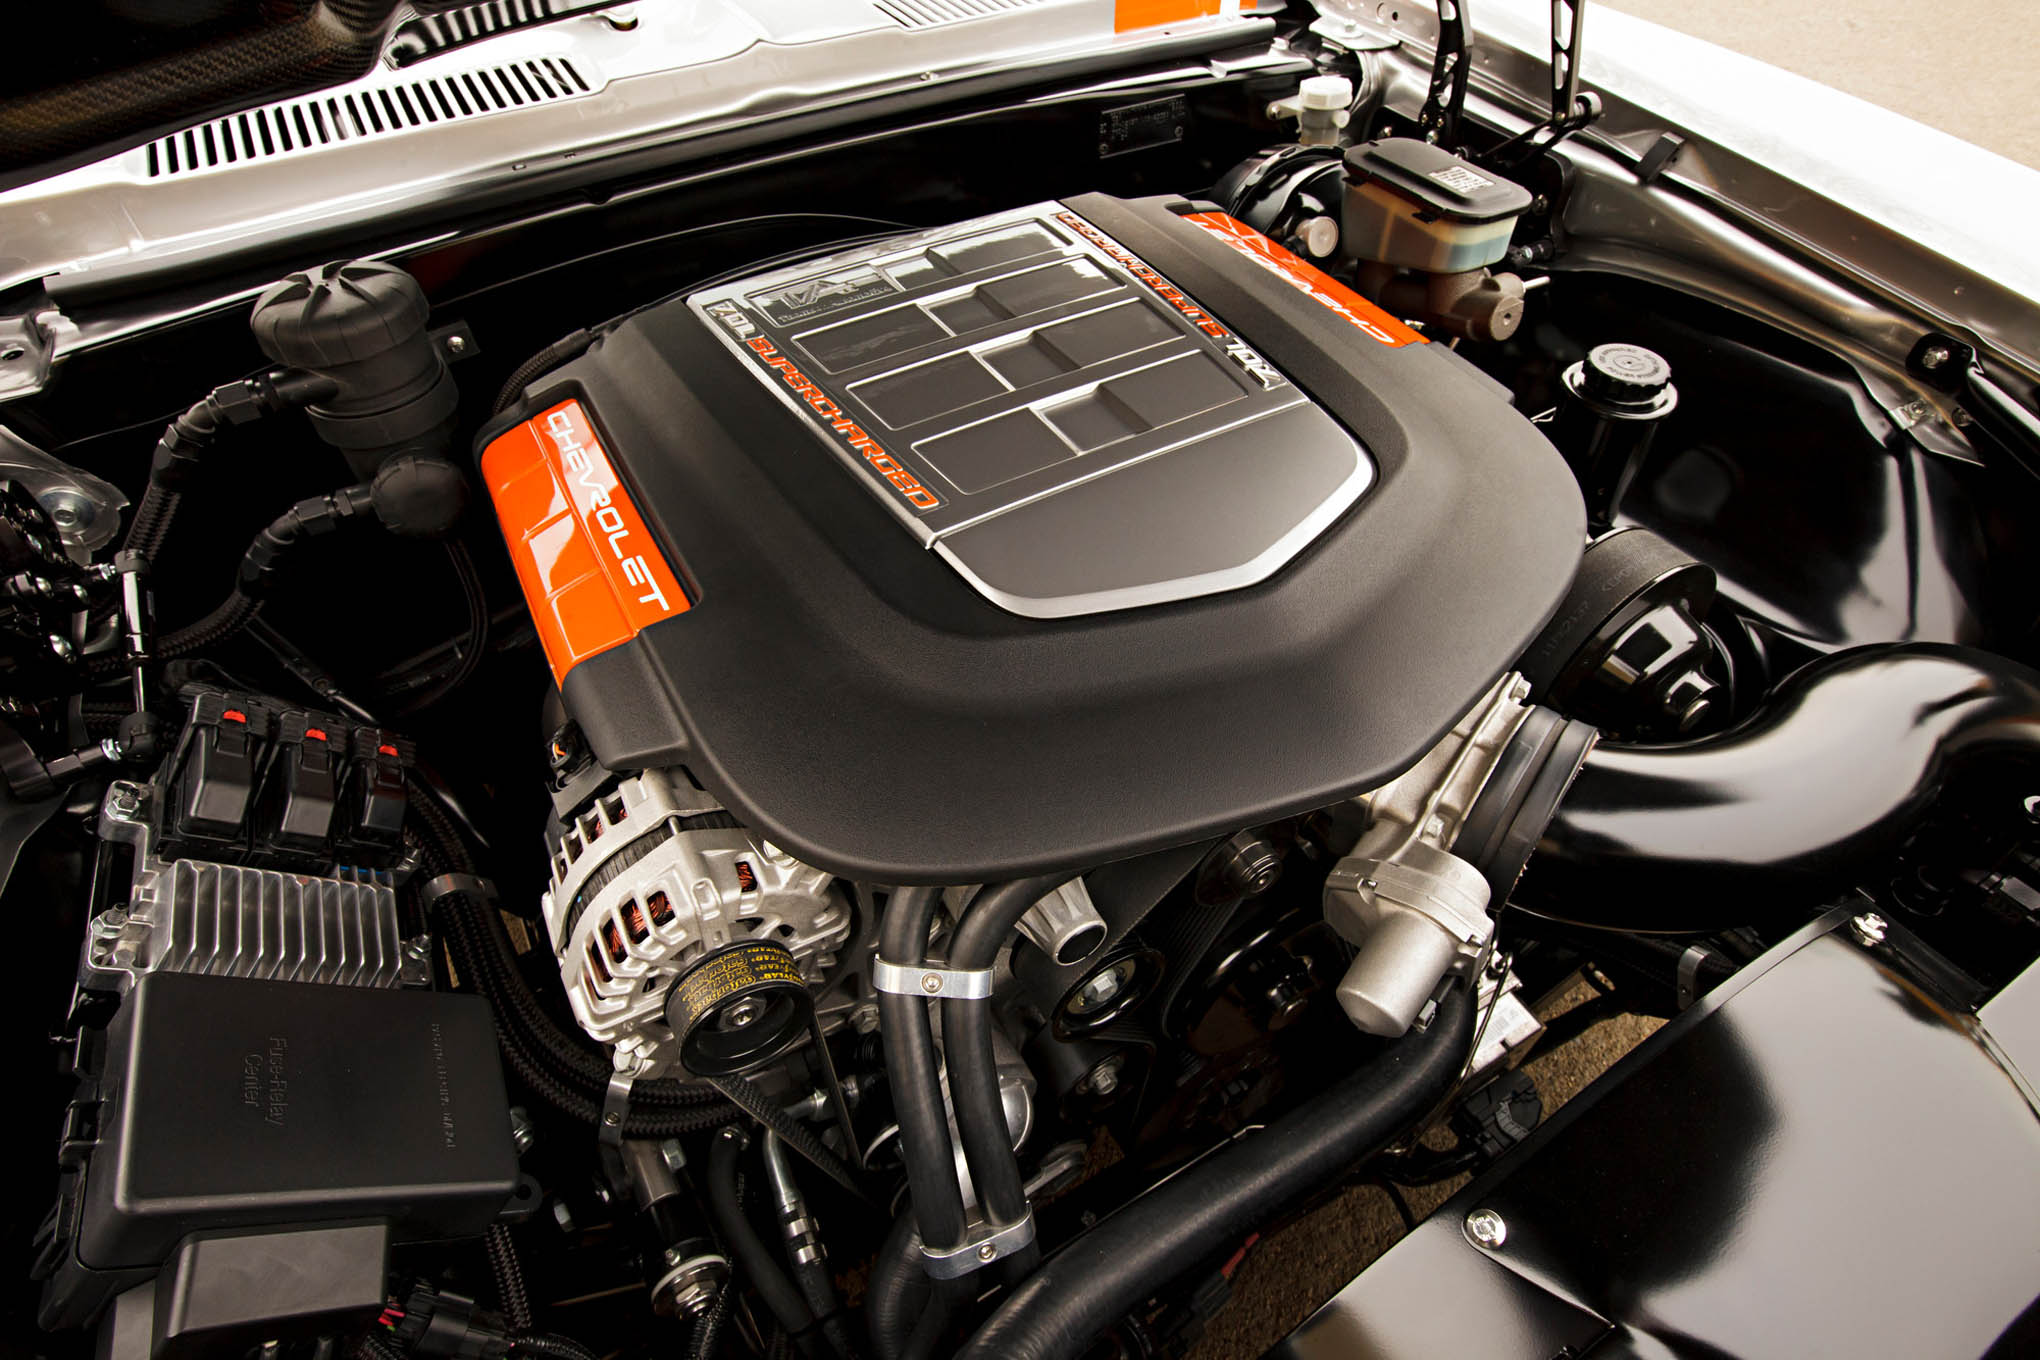 Thanks to a new cam and ported LS9 heads, Mayhem's supercharged LS7 produces  877 hp.